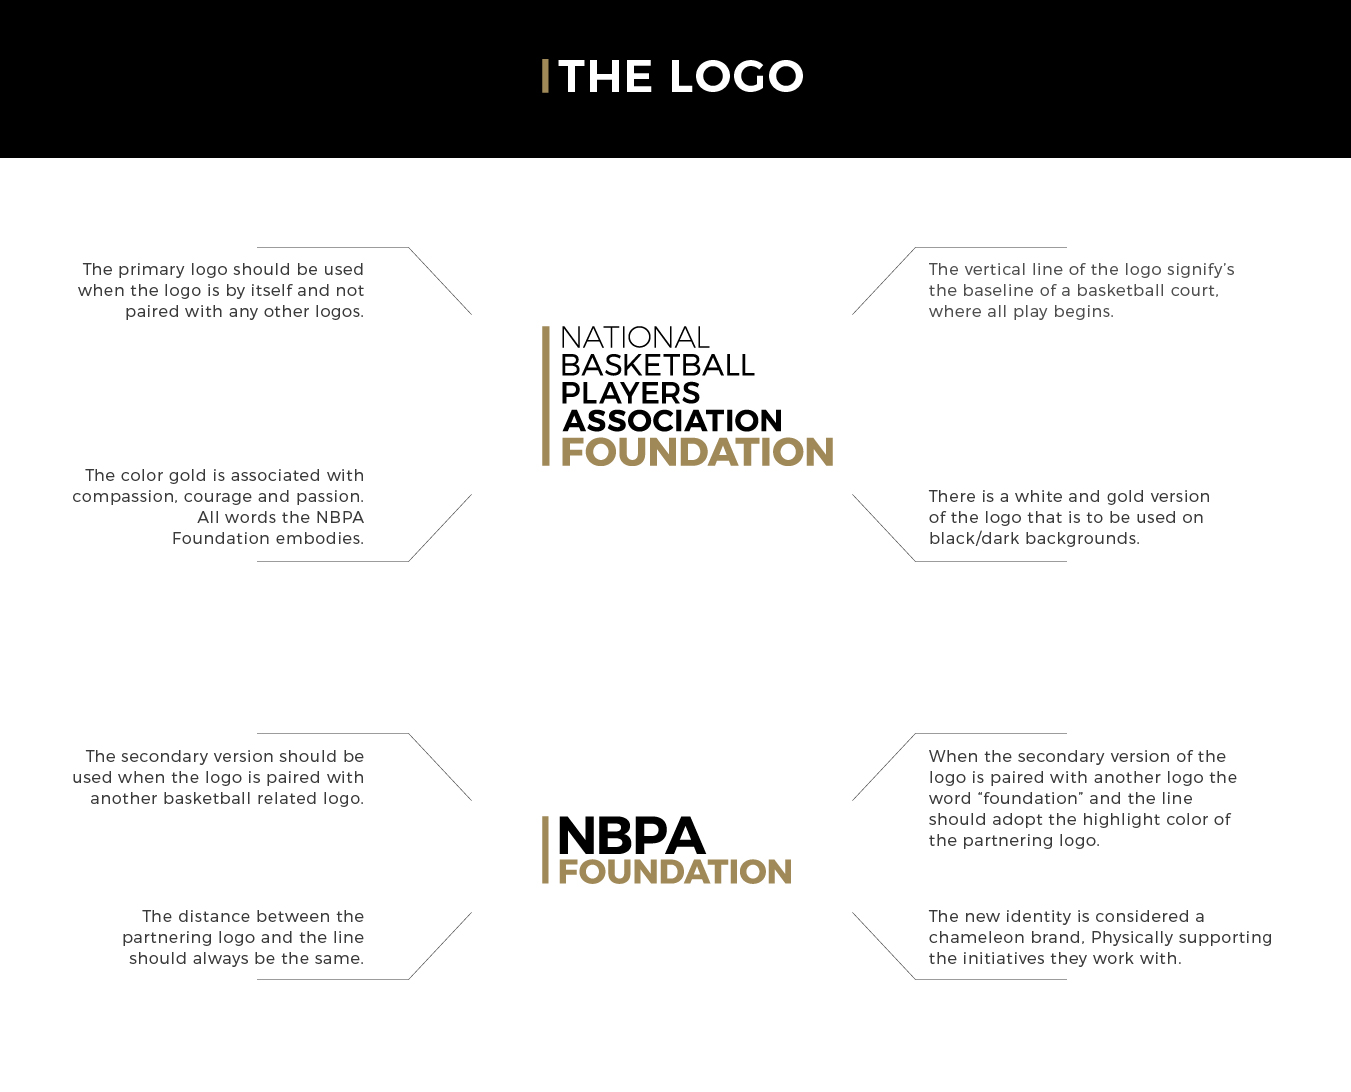 Features of the new logo -